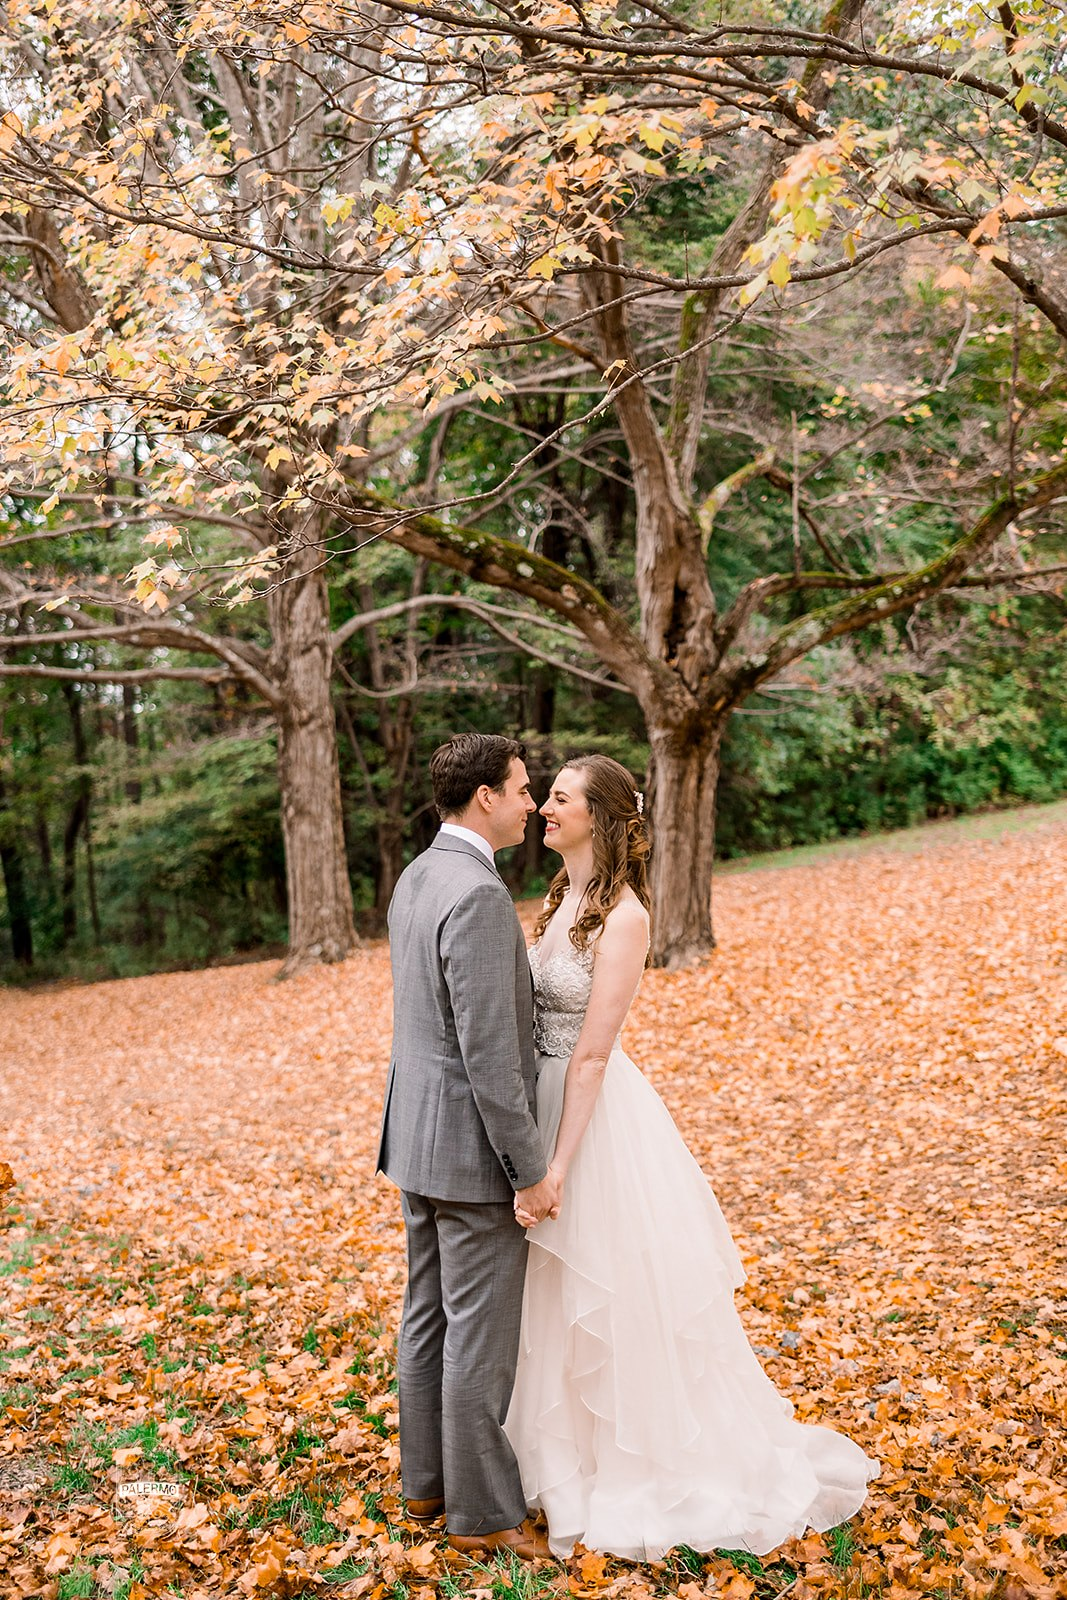 Bride and groom pose for fall outdoor wedding photos for fall barn wedding in Pittsburgh, PA planned by Exhale Events. Find more wedding inspiration at exhale-events.com!